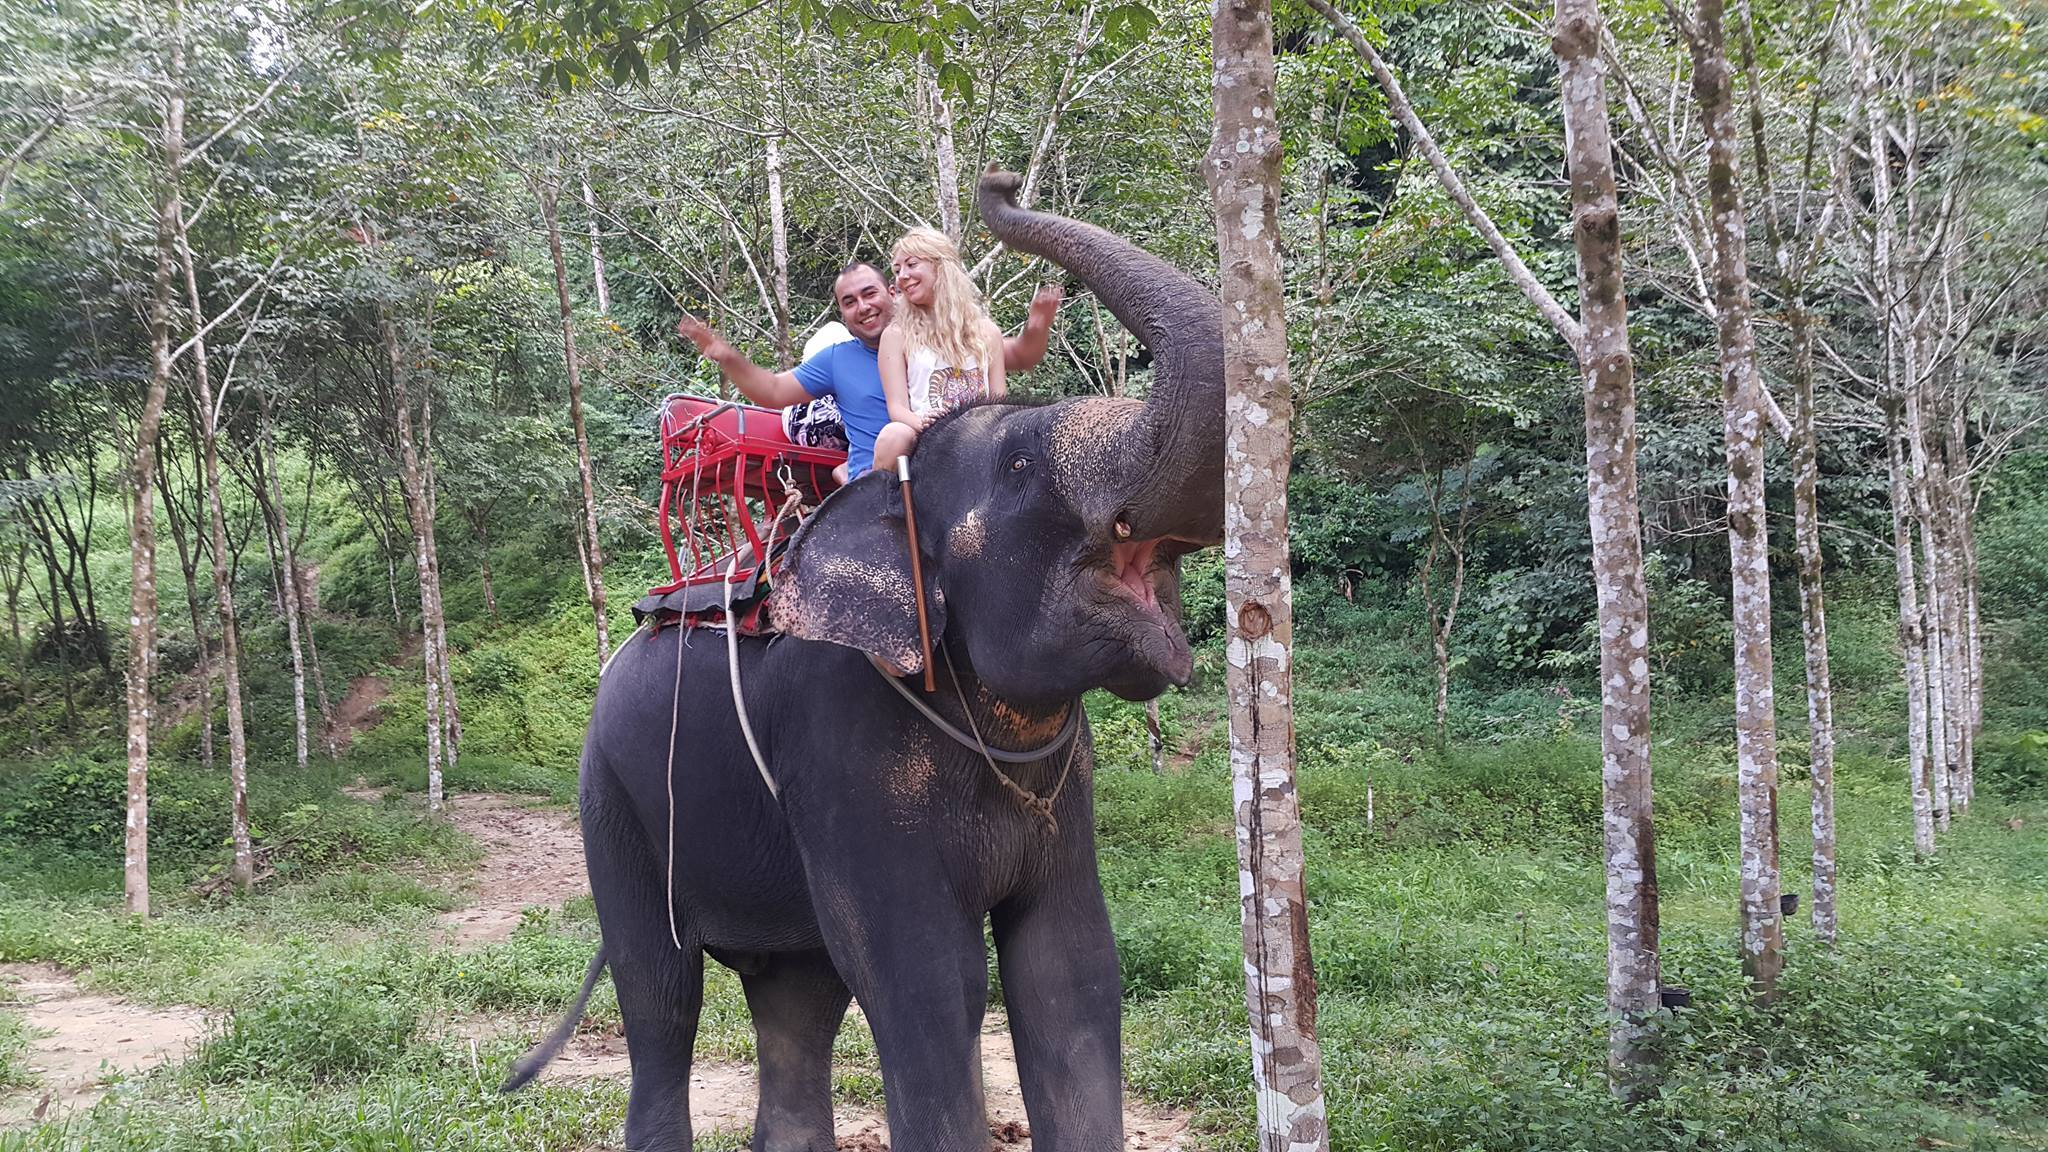 Elephant Safari Phuket